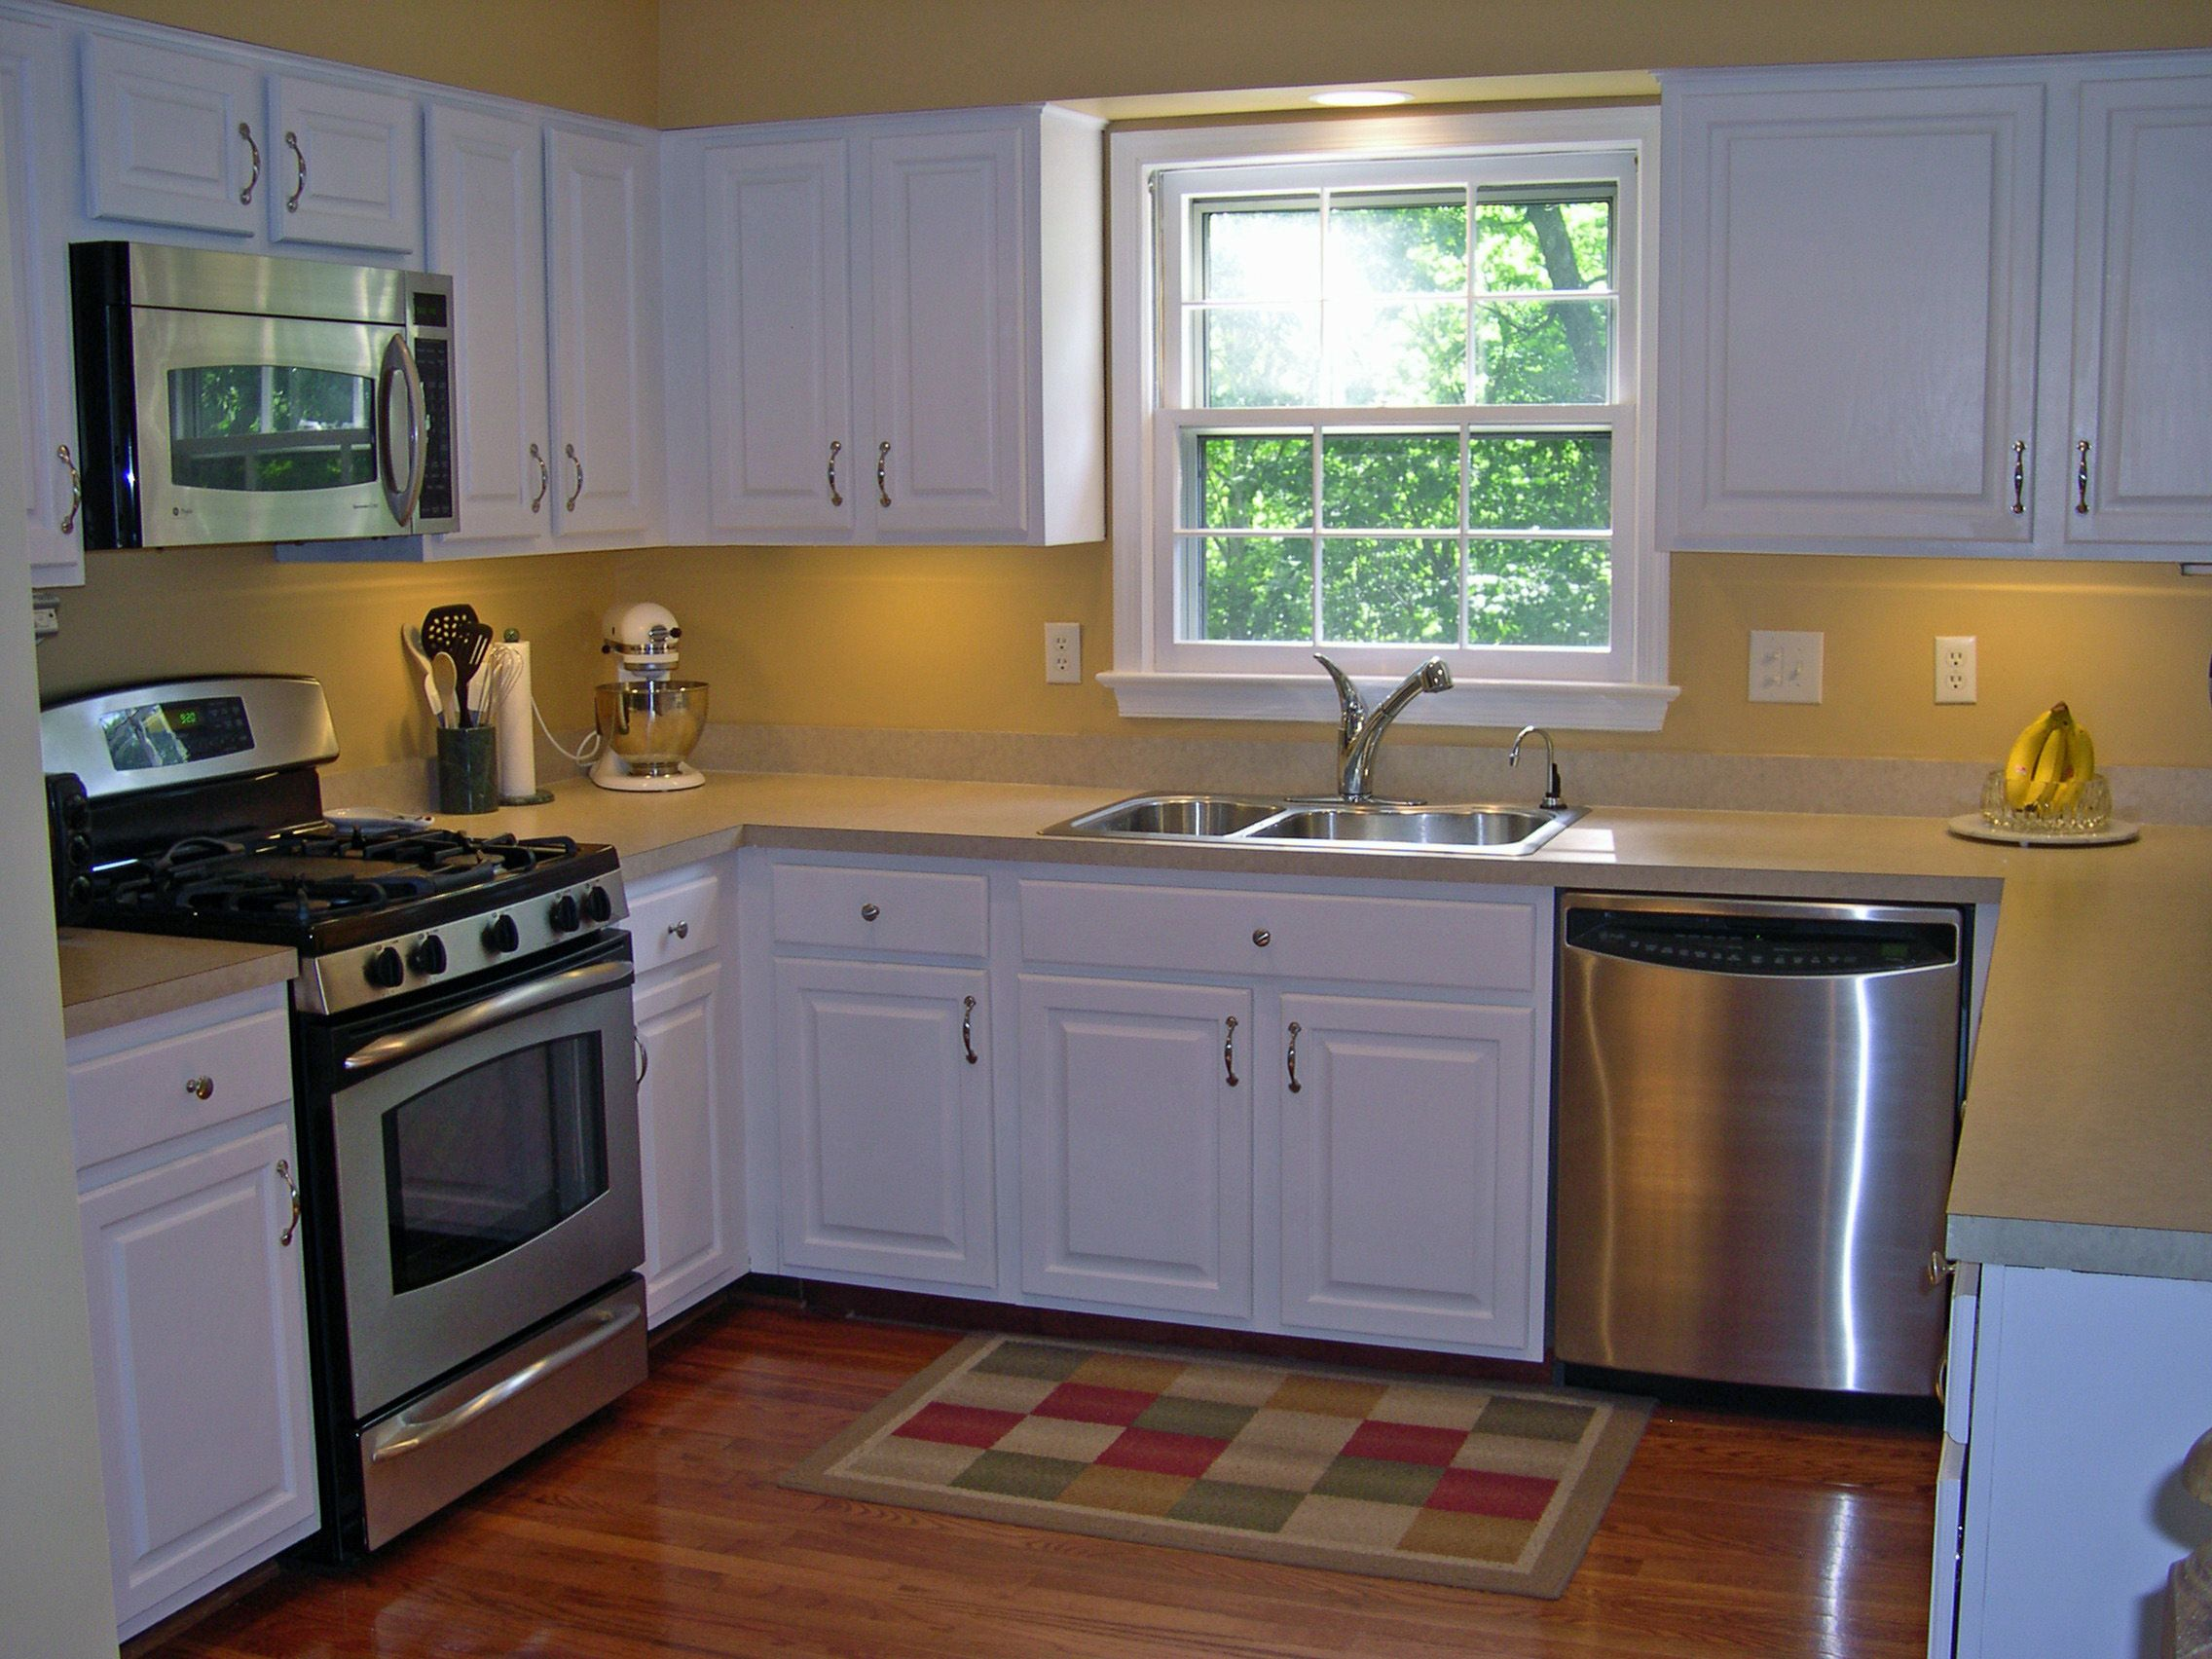 Small Kitchen Designs On A Budget Small Kitchen Remodel Ideas On